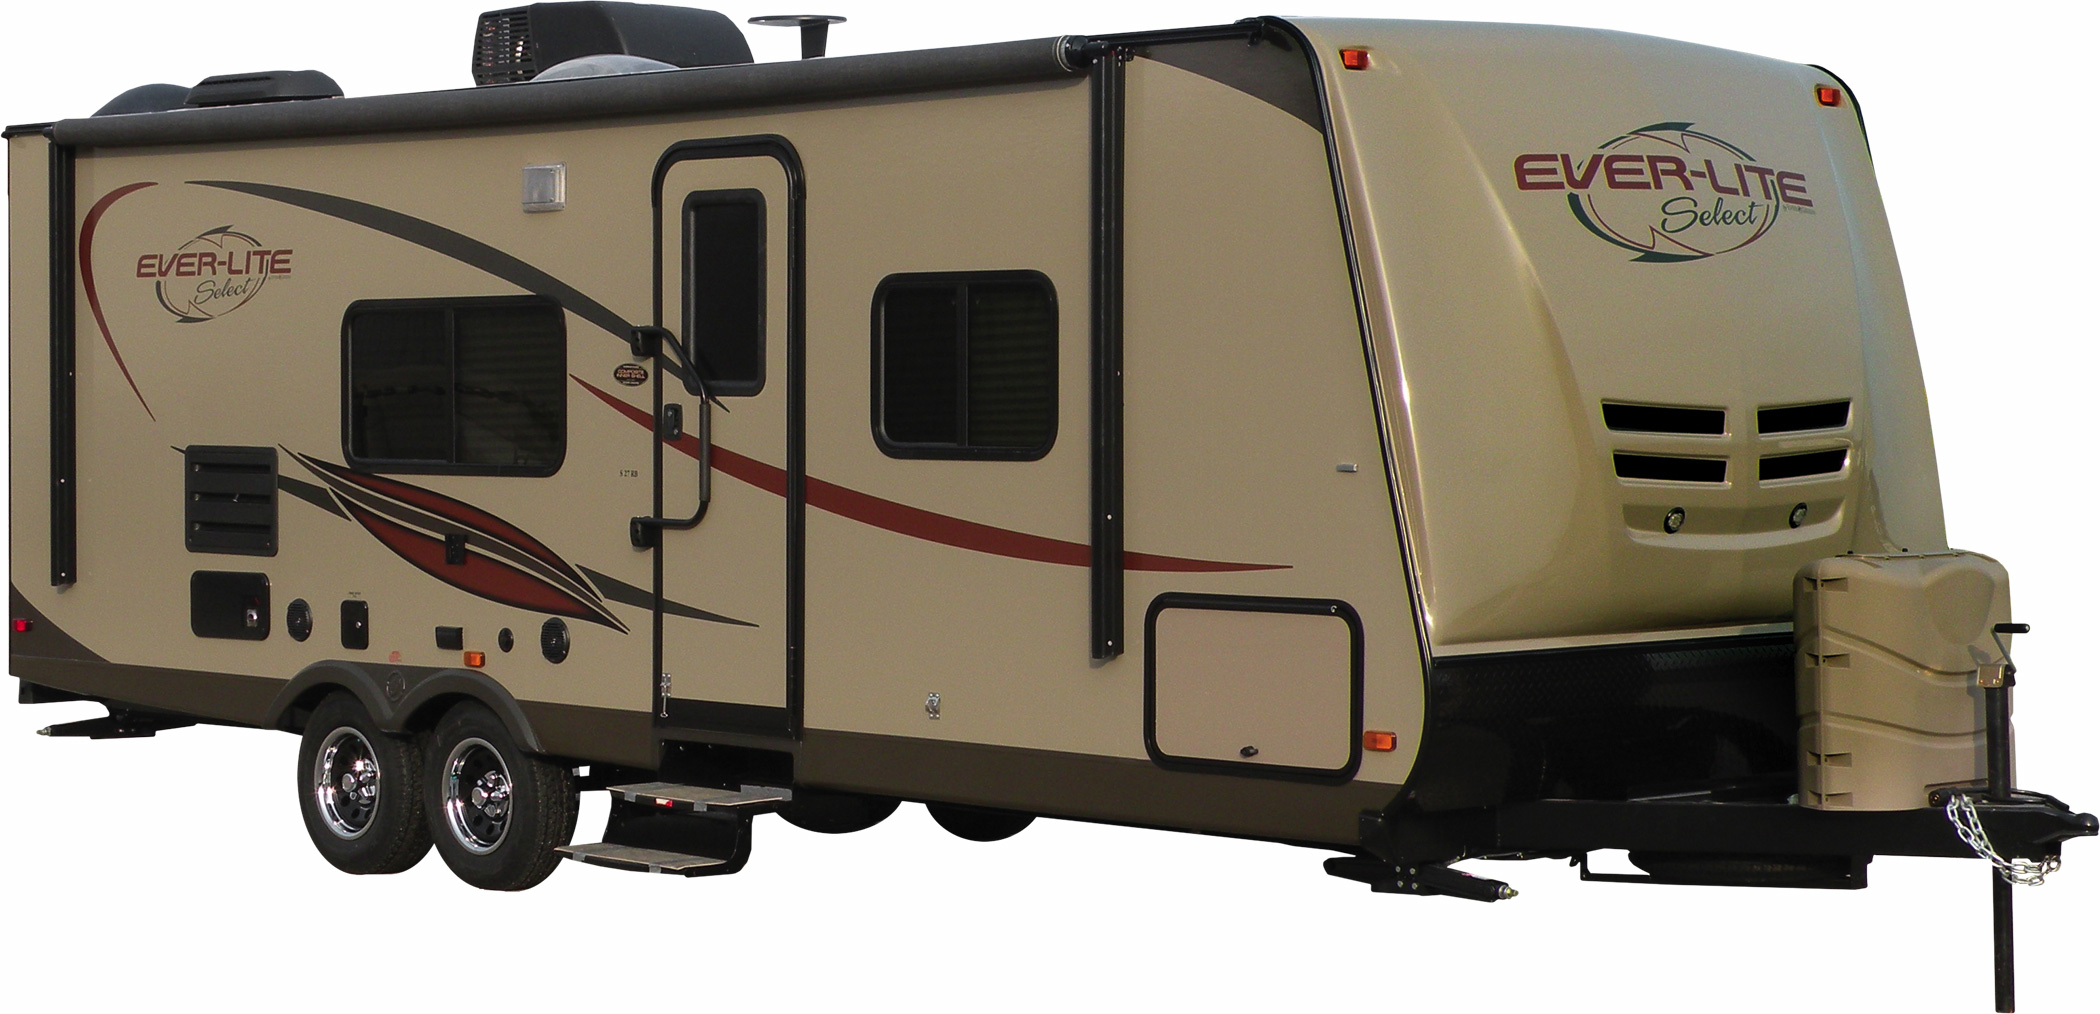 Conventional Travel Trailer